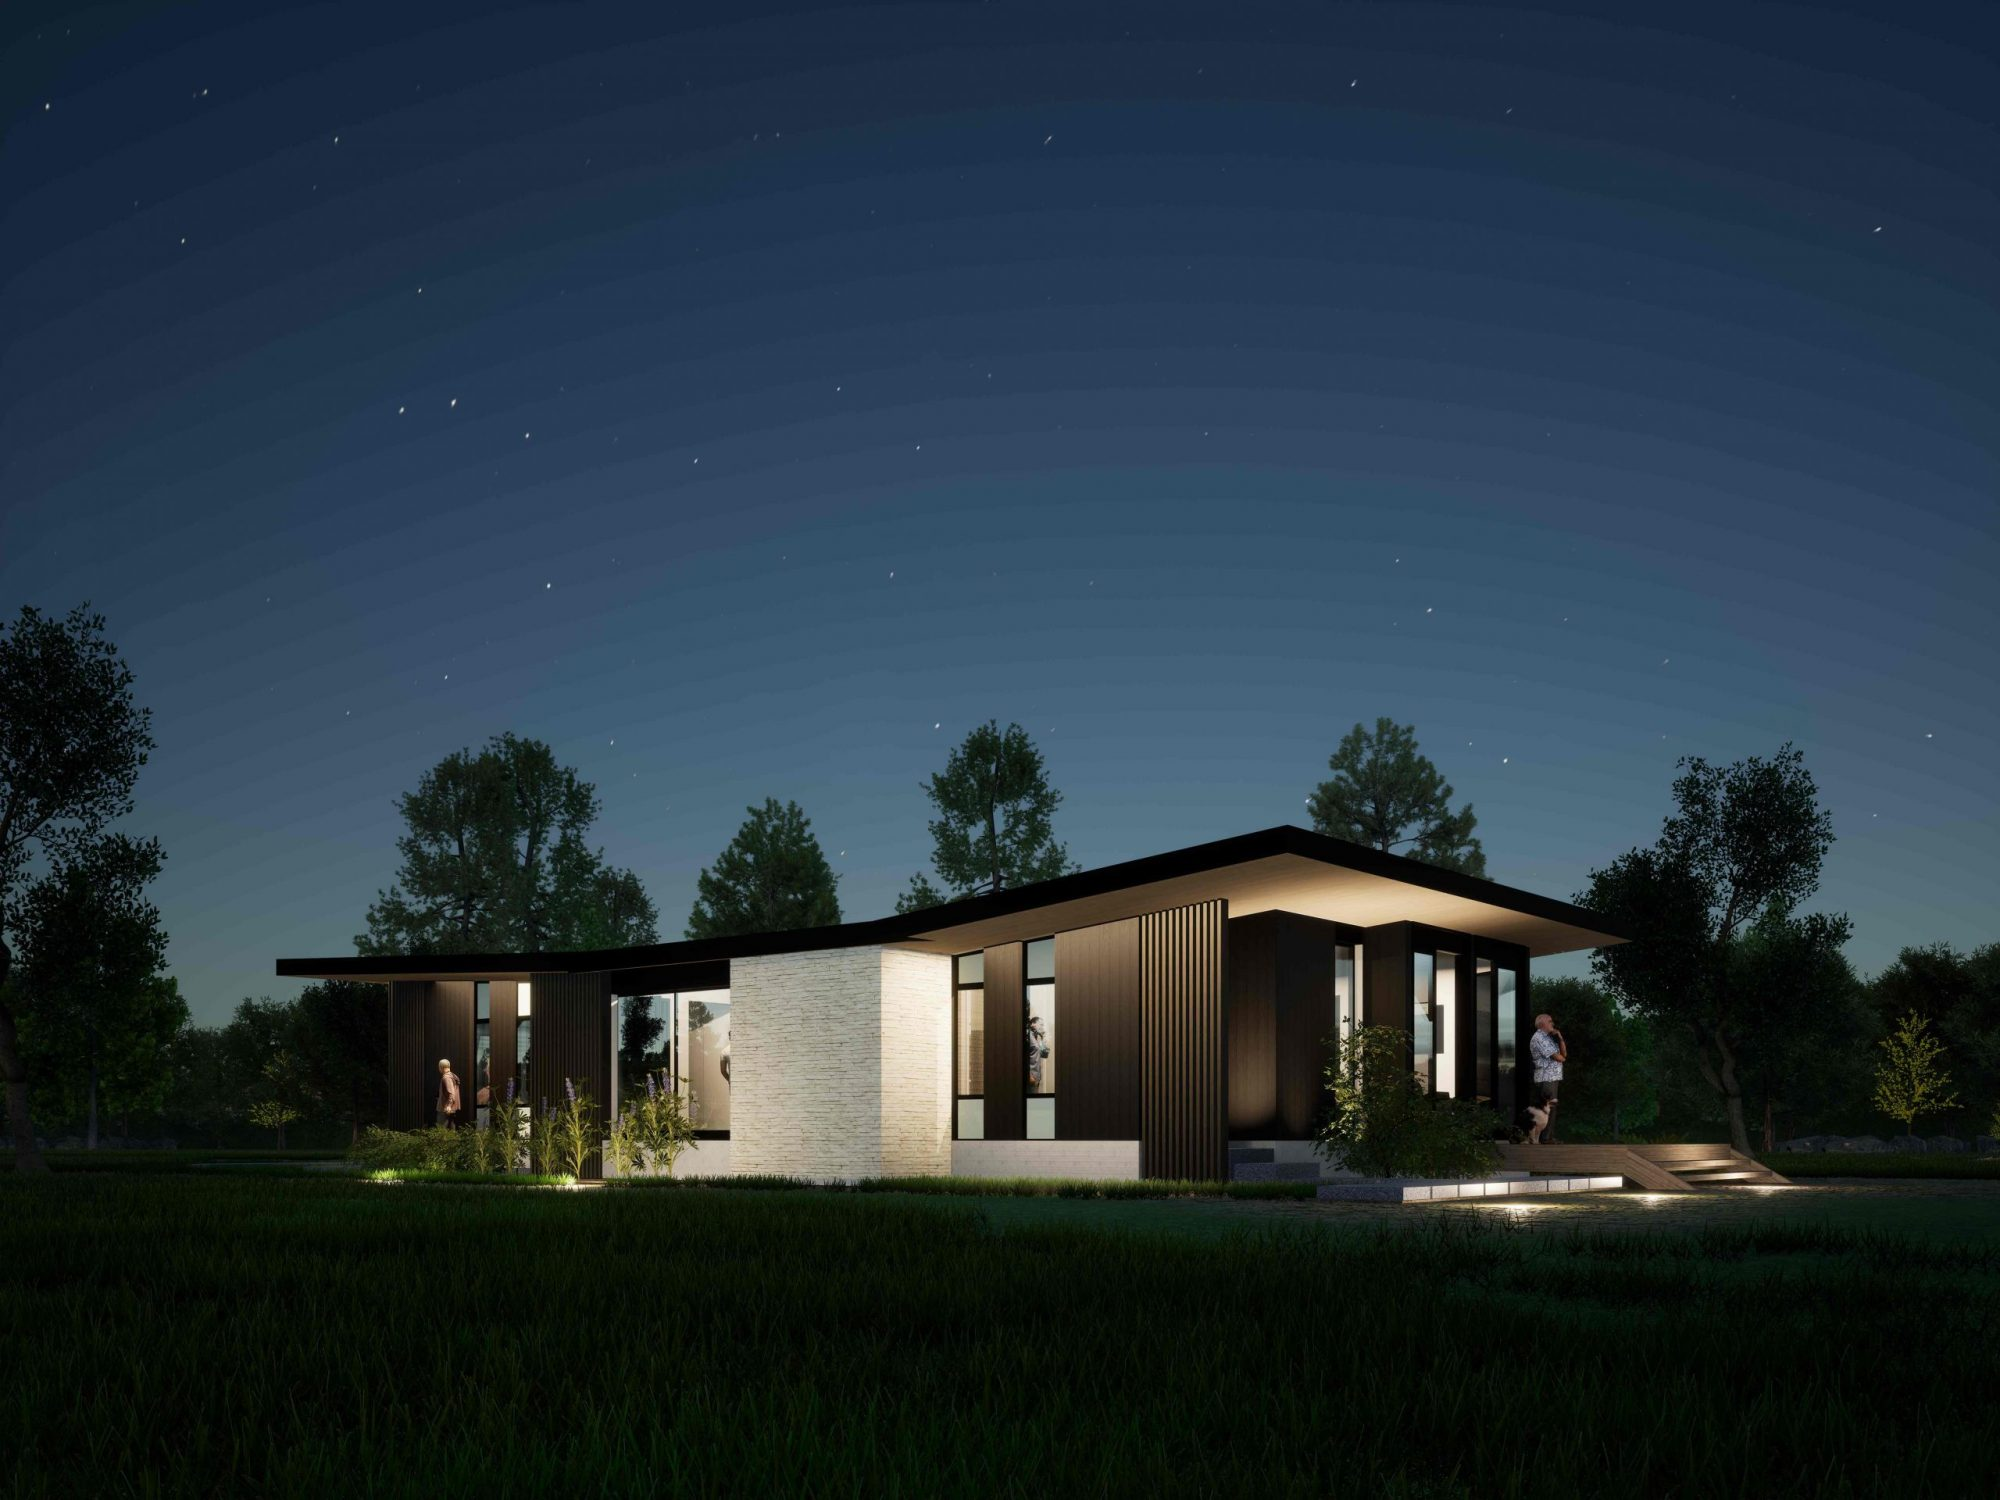 Copy-of-Roof-1---Road-Elevation-2-Night-2